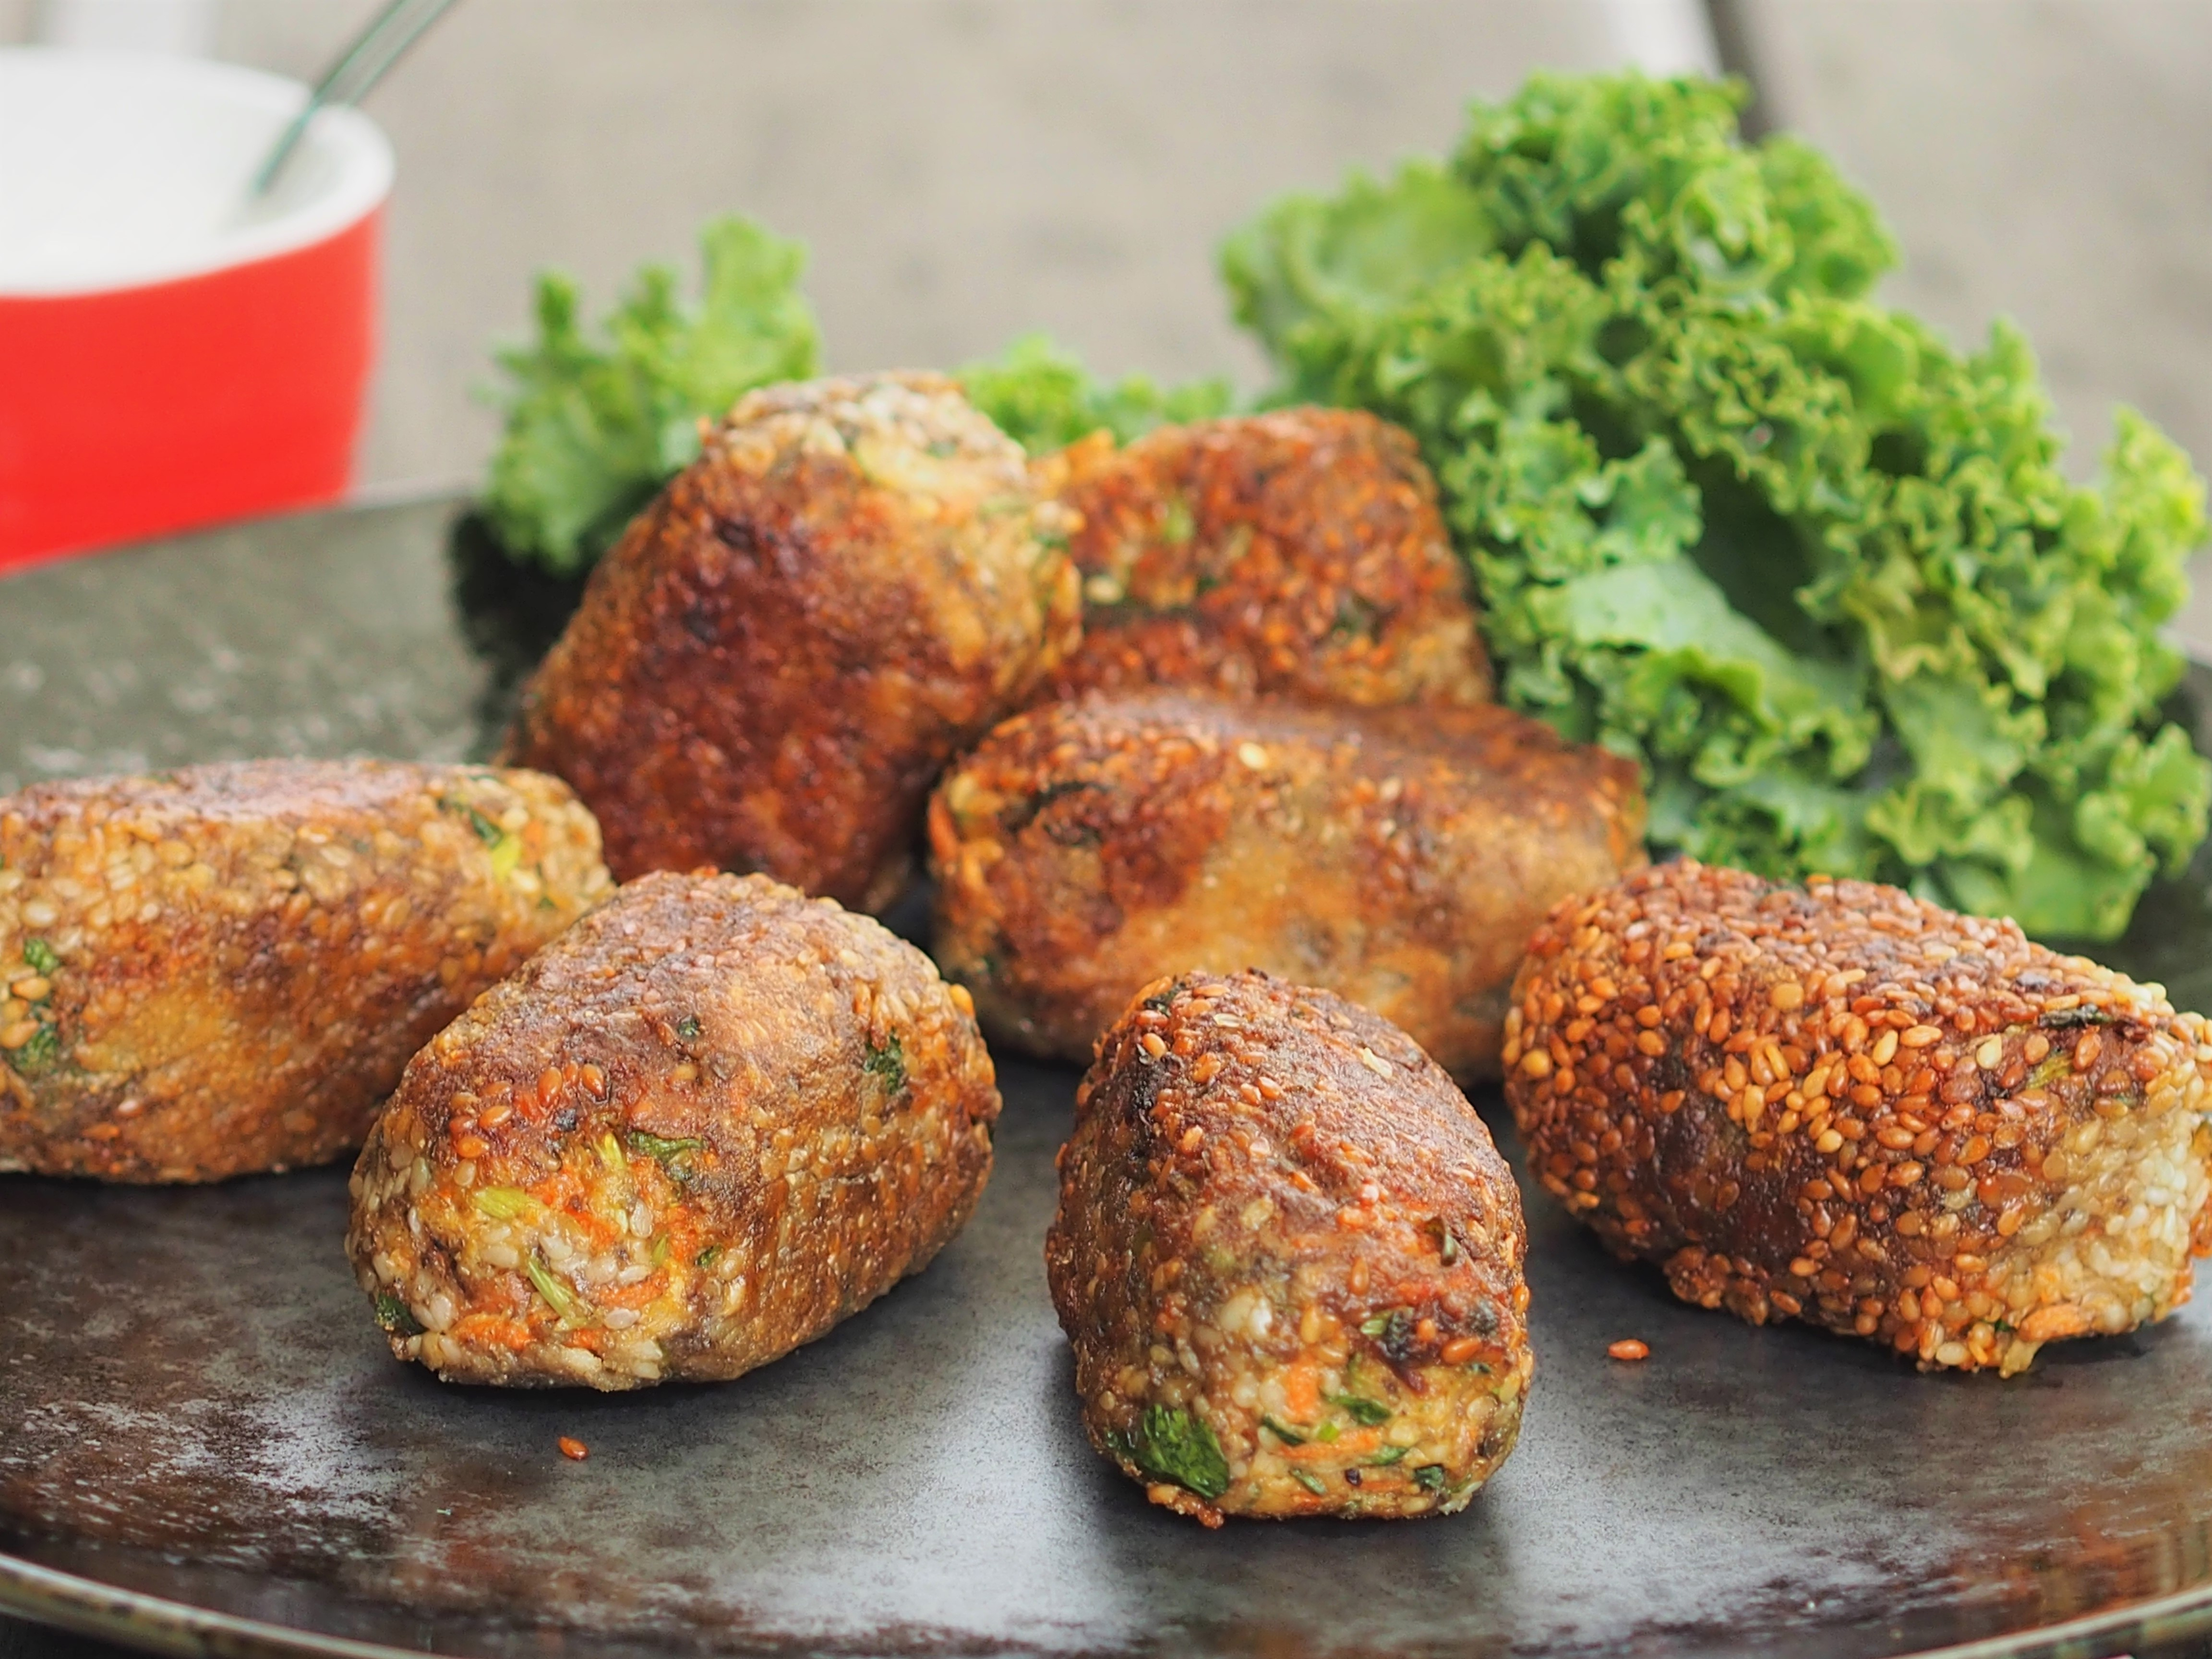 Carrot and Zucchini Croquettes - Storehouse